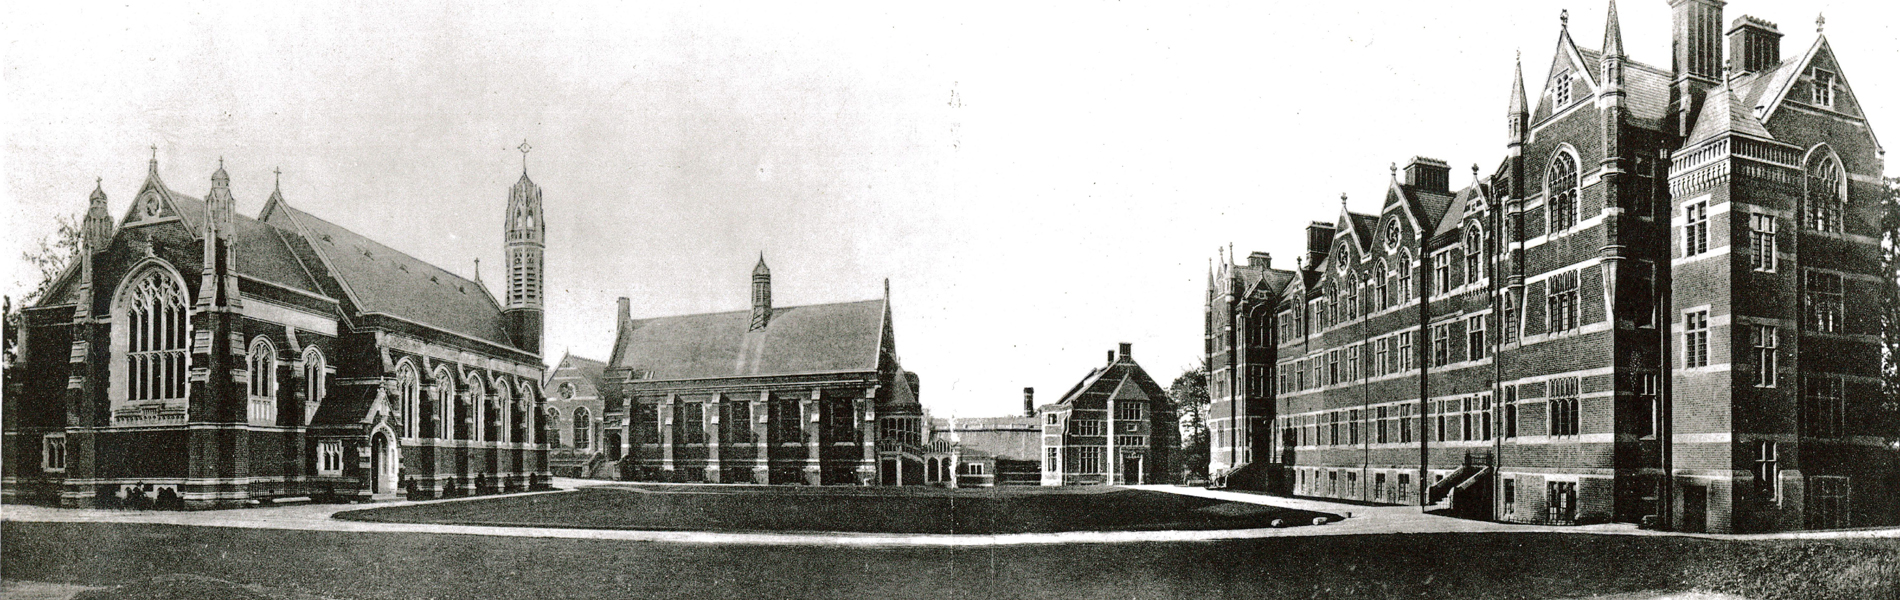 Upper Quad between 1906-1913